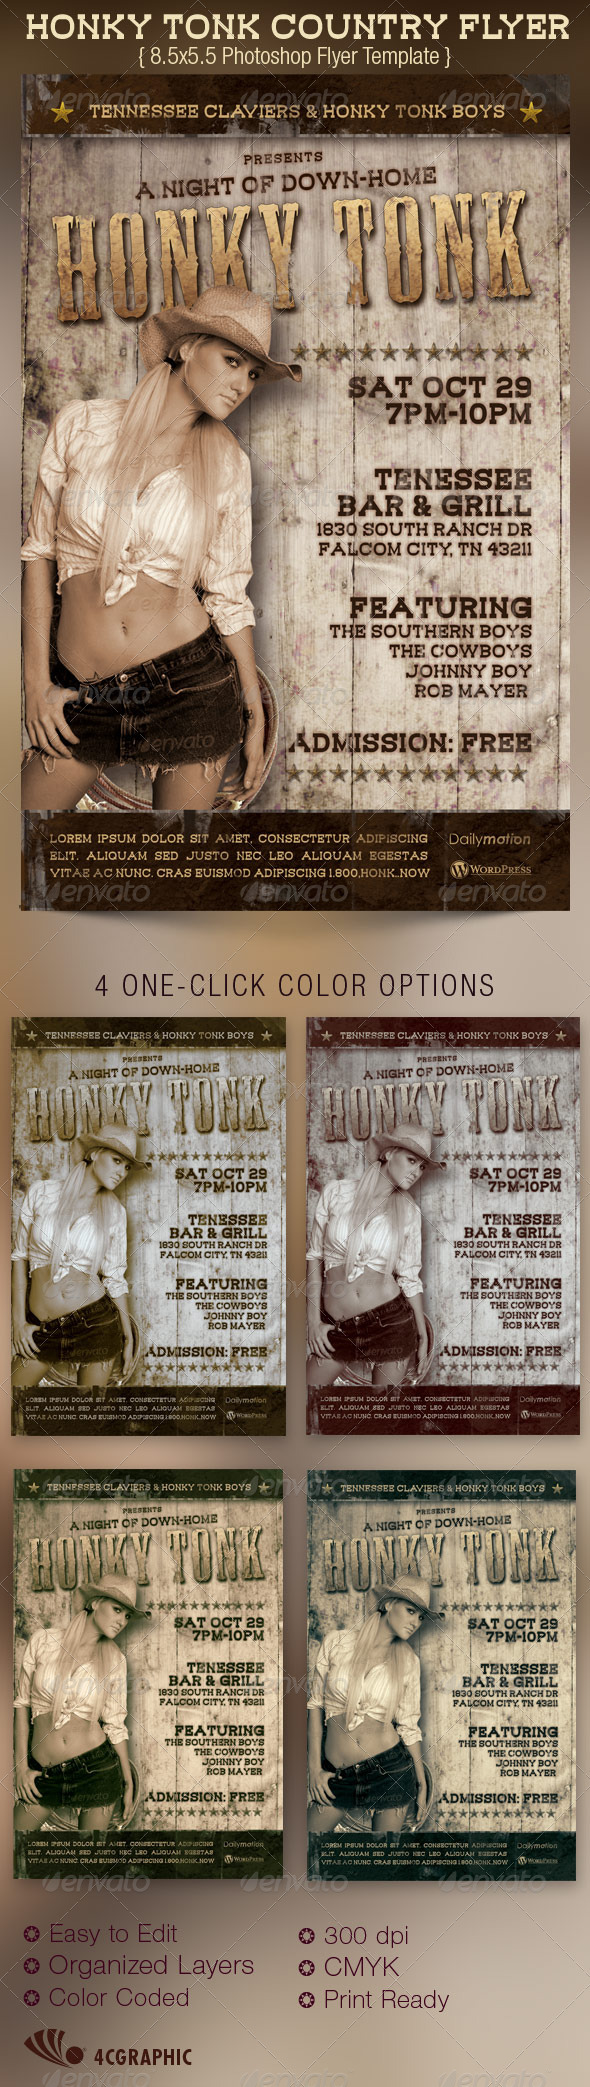 GraphicRiver Honky Tonk Country Flyer Template 2963337